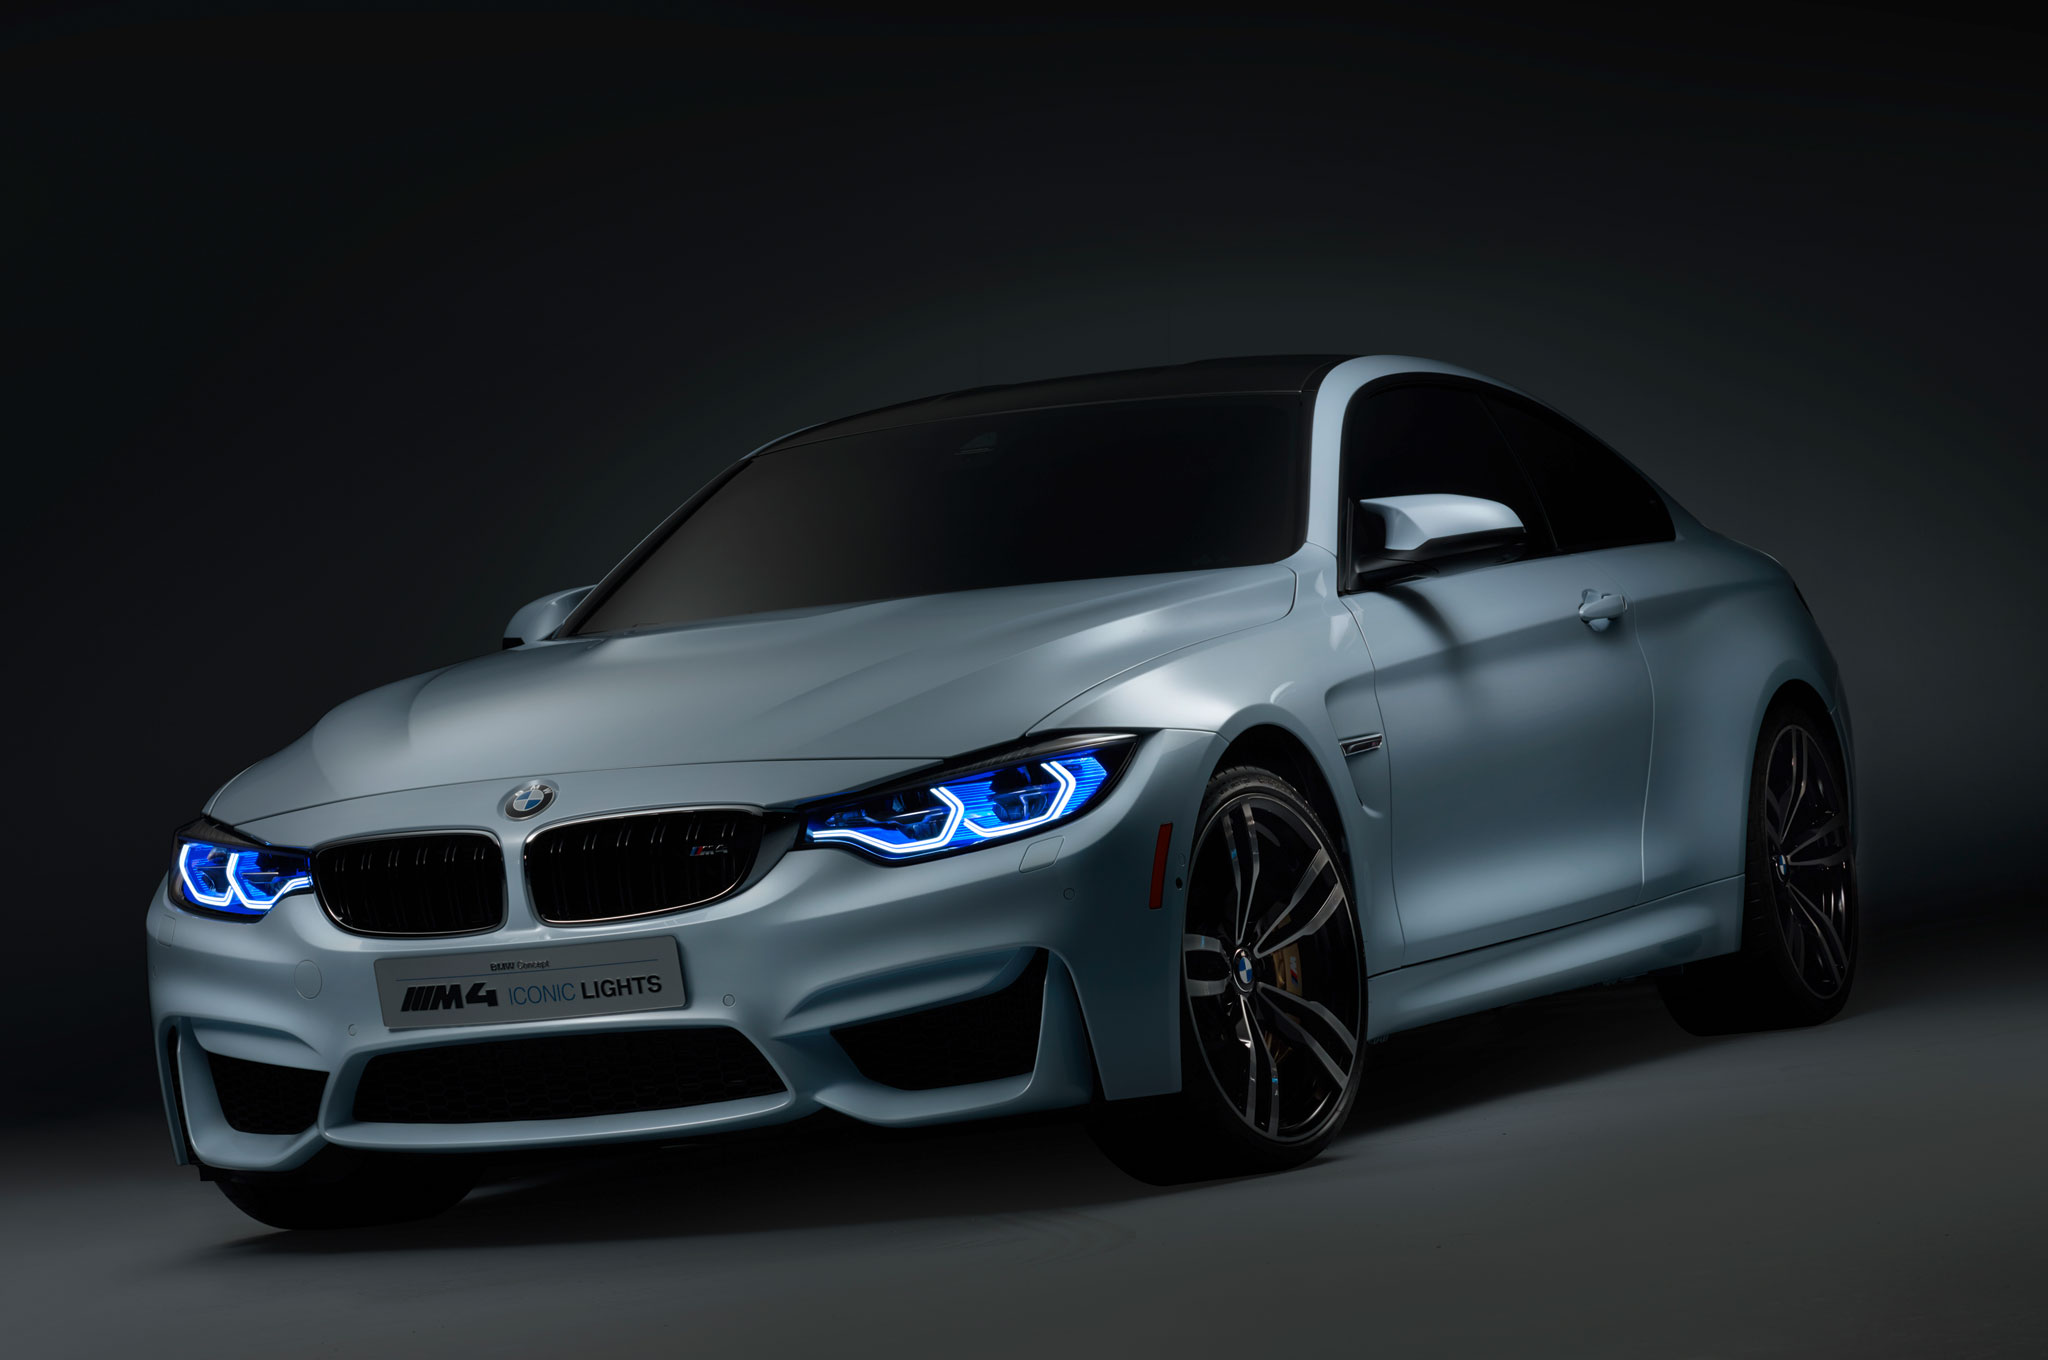 iconic lighting famous bmw m4 concept iconic lights shows laser and oled lighting at ces